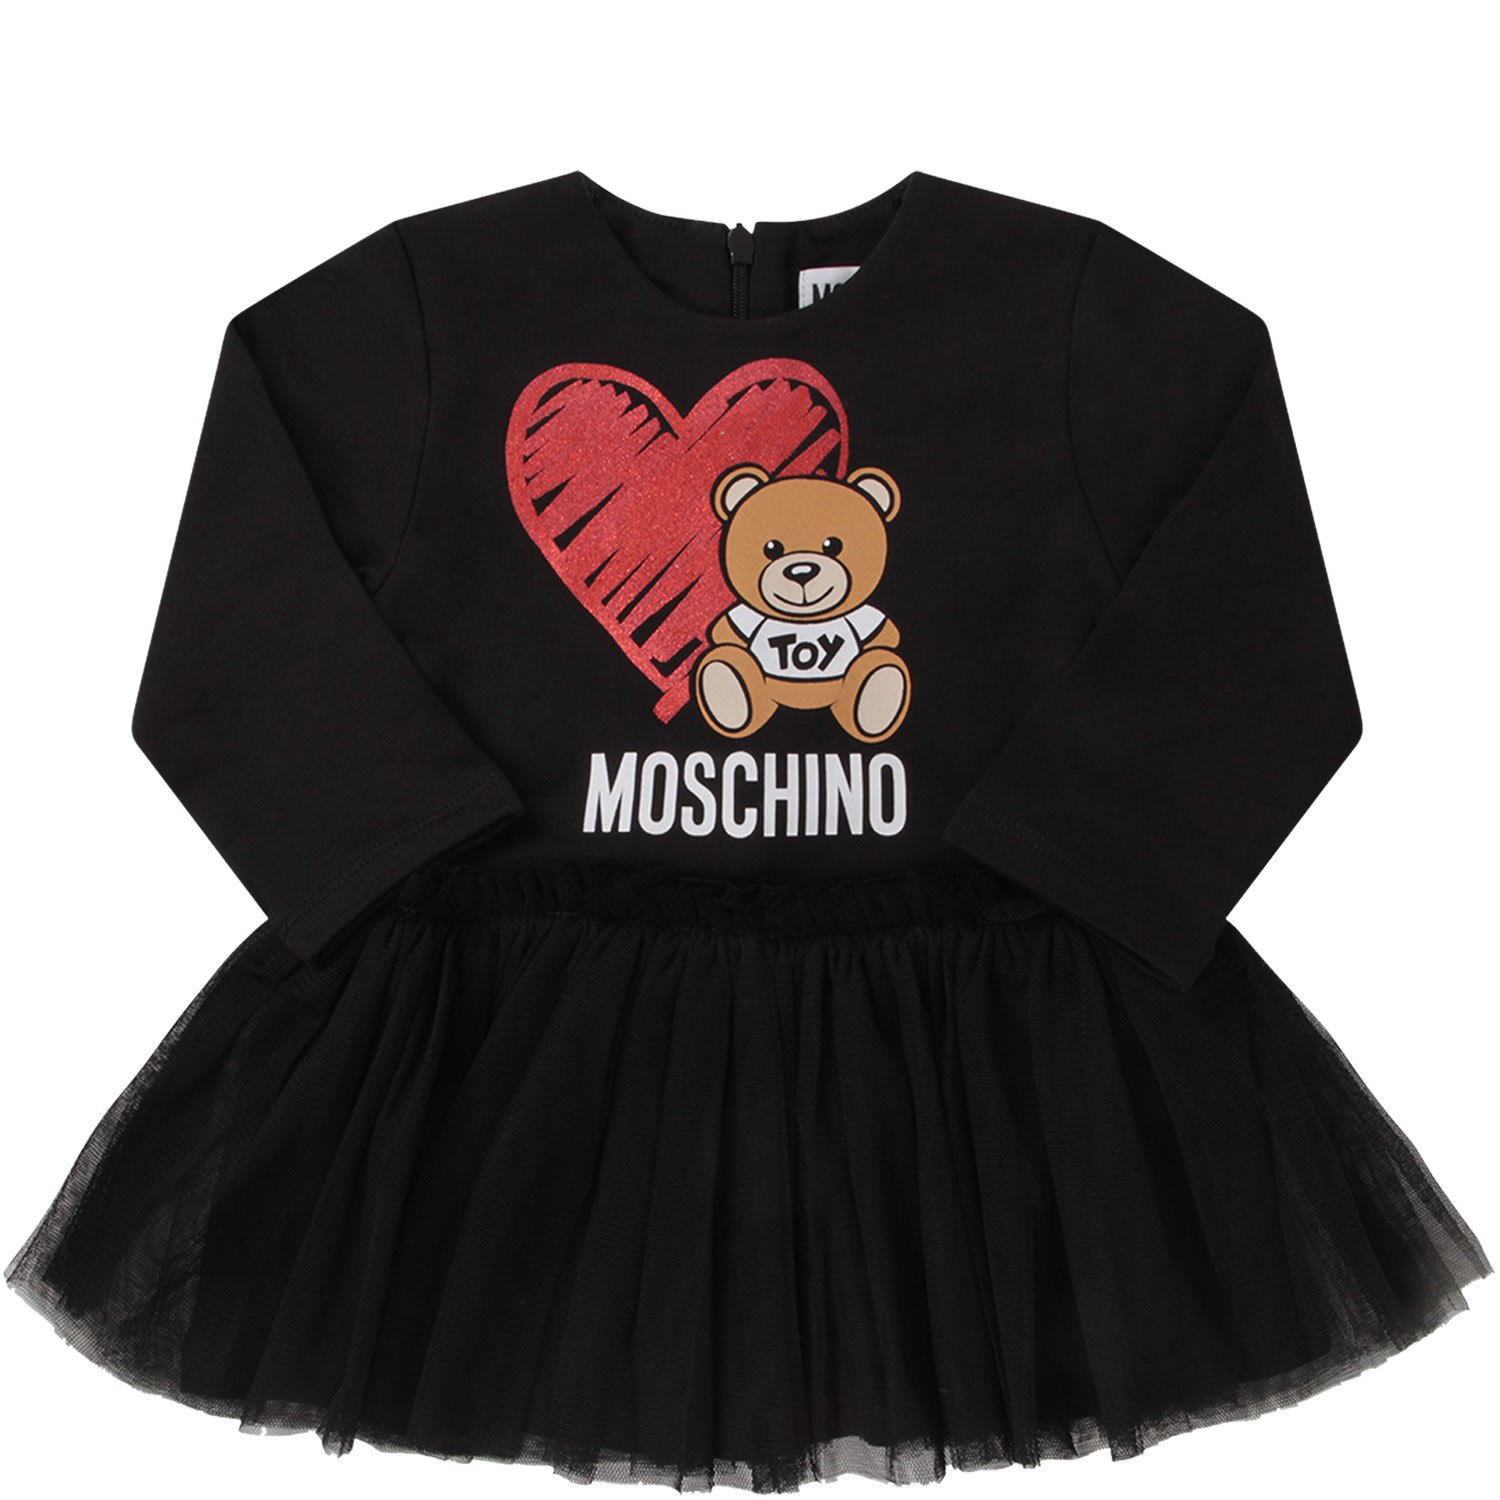 Moschino Black Babygirl Dress With Colorful Teddy Bear